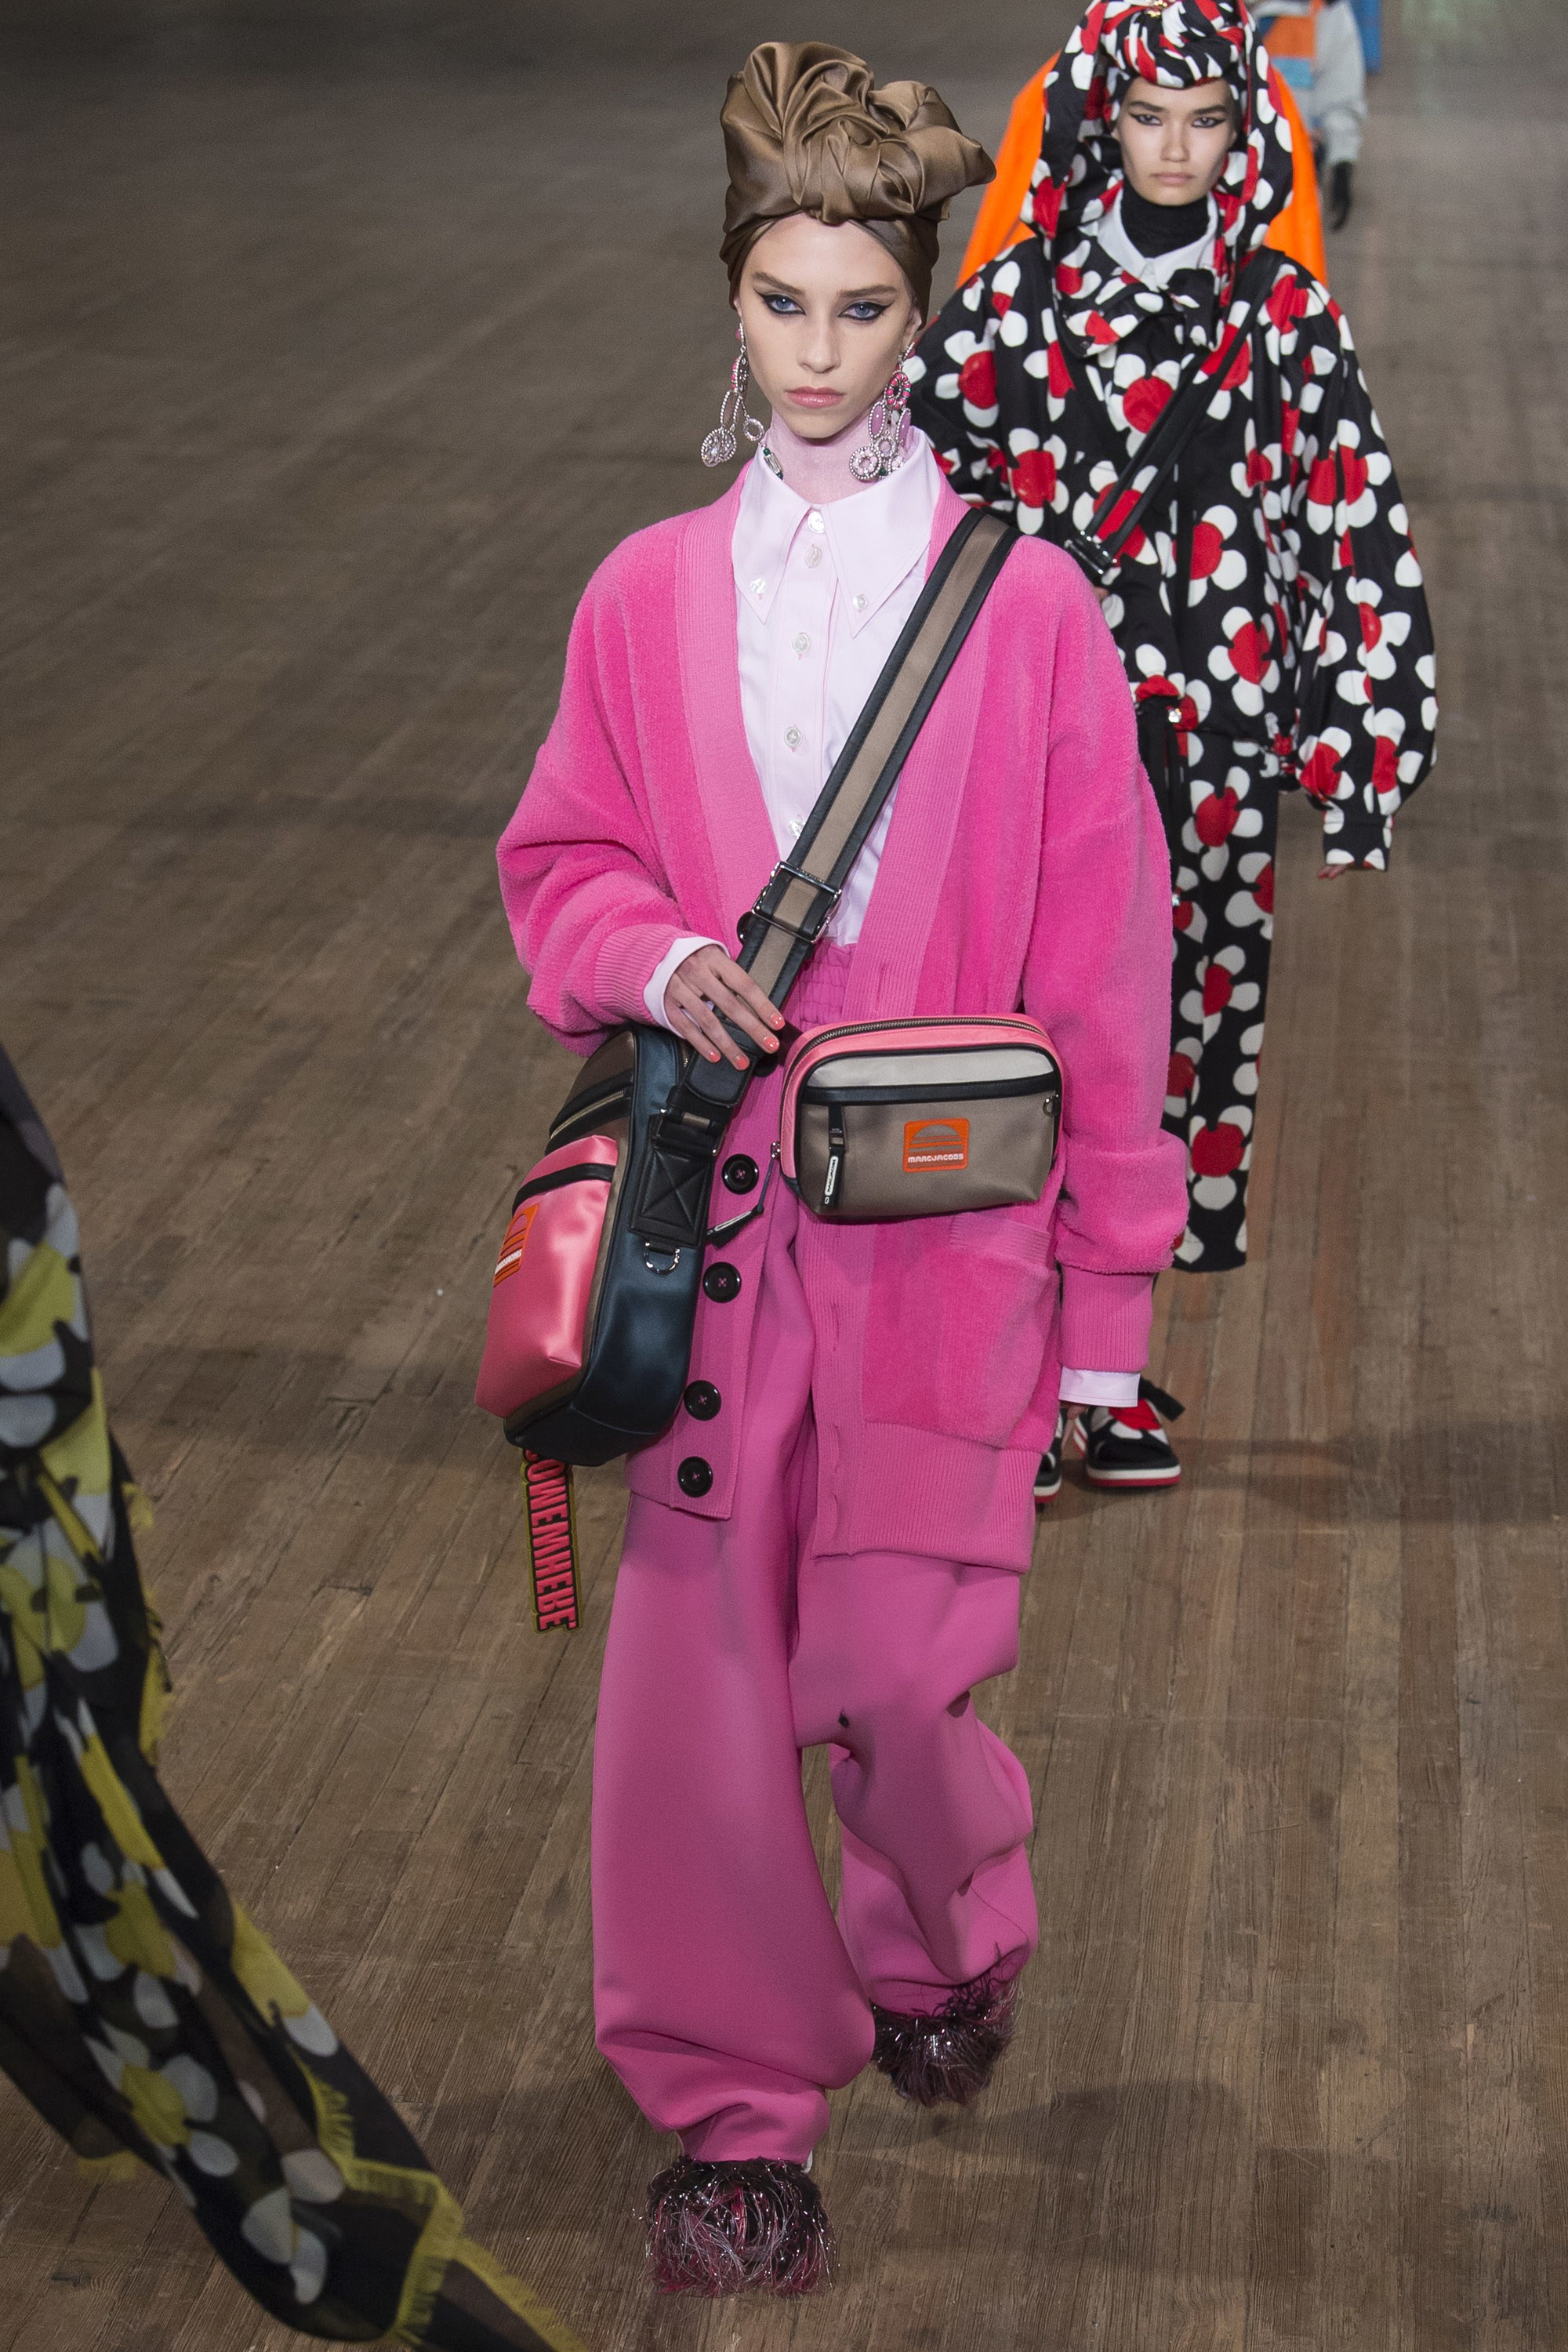 marc jacobs xuan he 2018 03